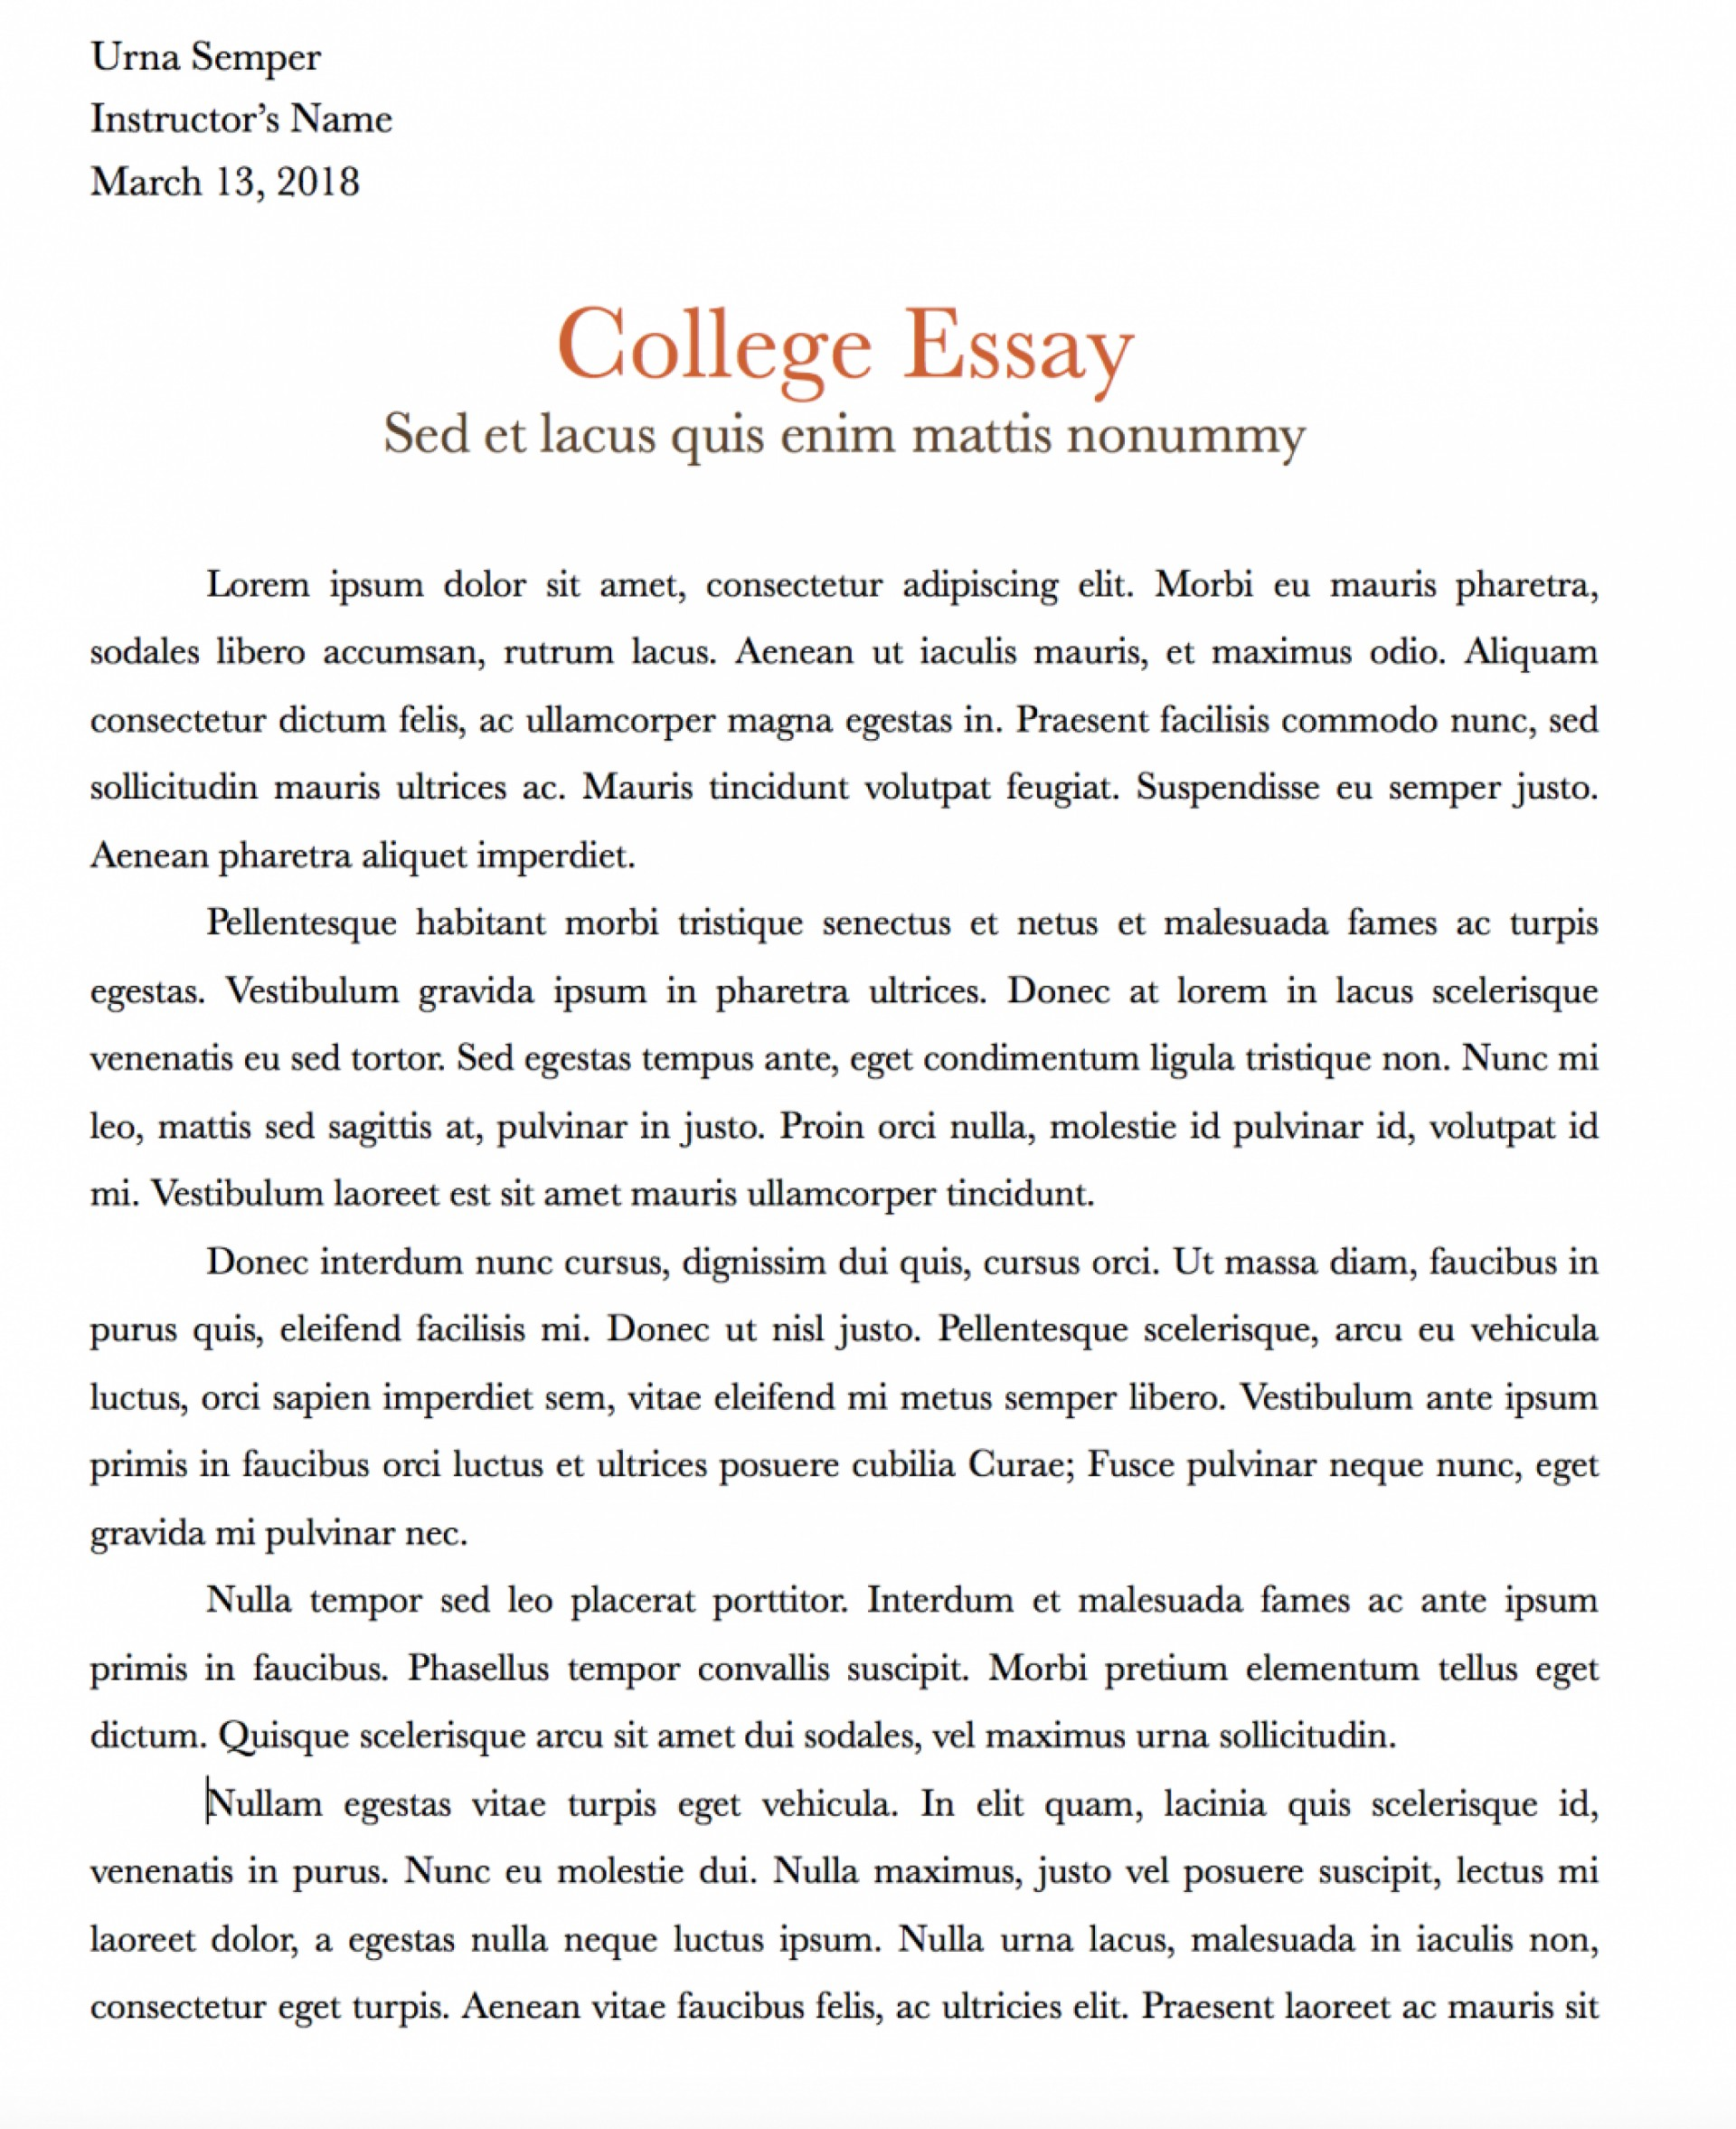 002 Essay Example How To Start Off An Write Interesting And Captivating College Examples Ctwrvkoshcimzkxyhyl8 With Parag Scholarship About Yourself Excellent The First Body Paragraph In A Good Your Life 3 1920